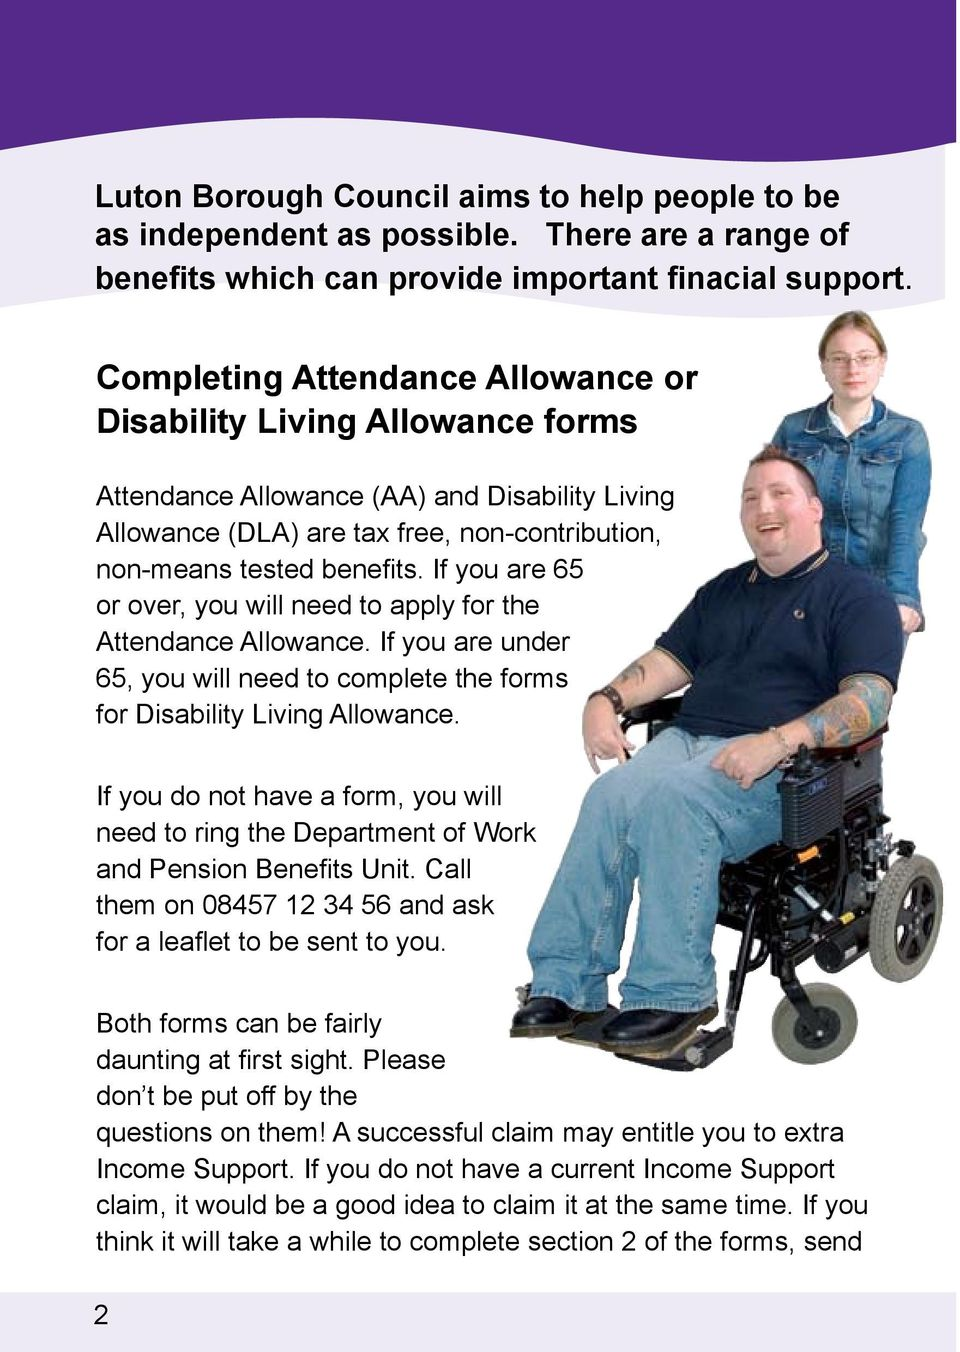 If you are 65 or over, you will need to apply for the Attendance Allowance. If you are under 65, you will need to complete the forms for Disability Living Allowance.